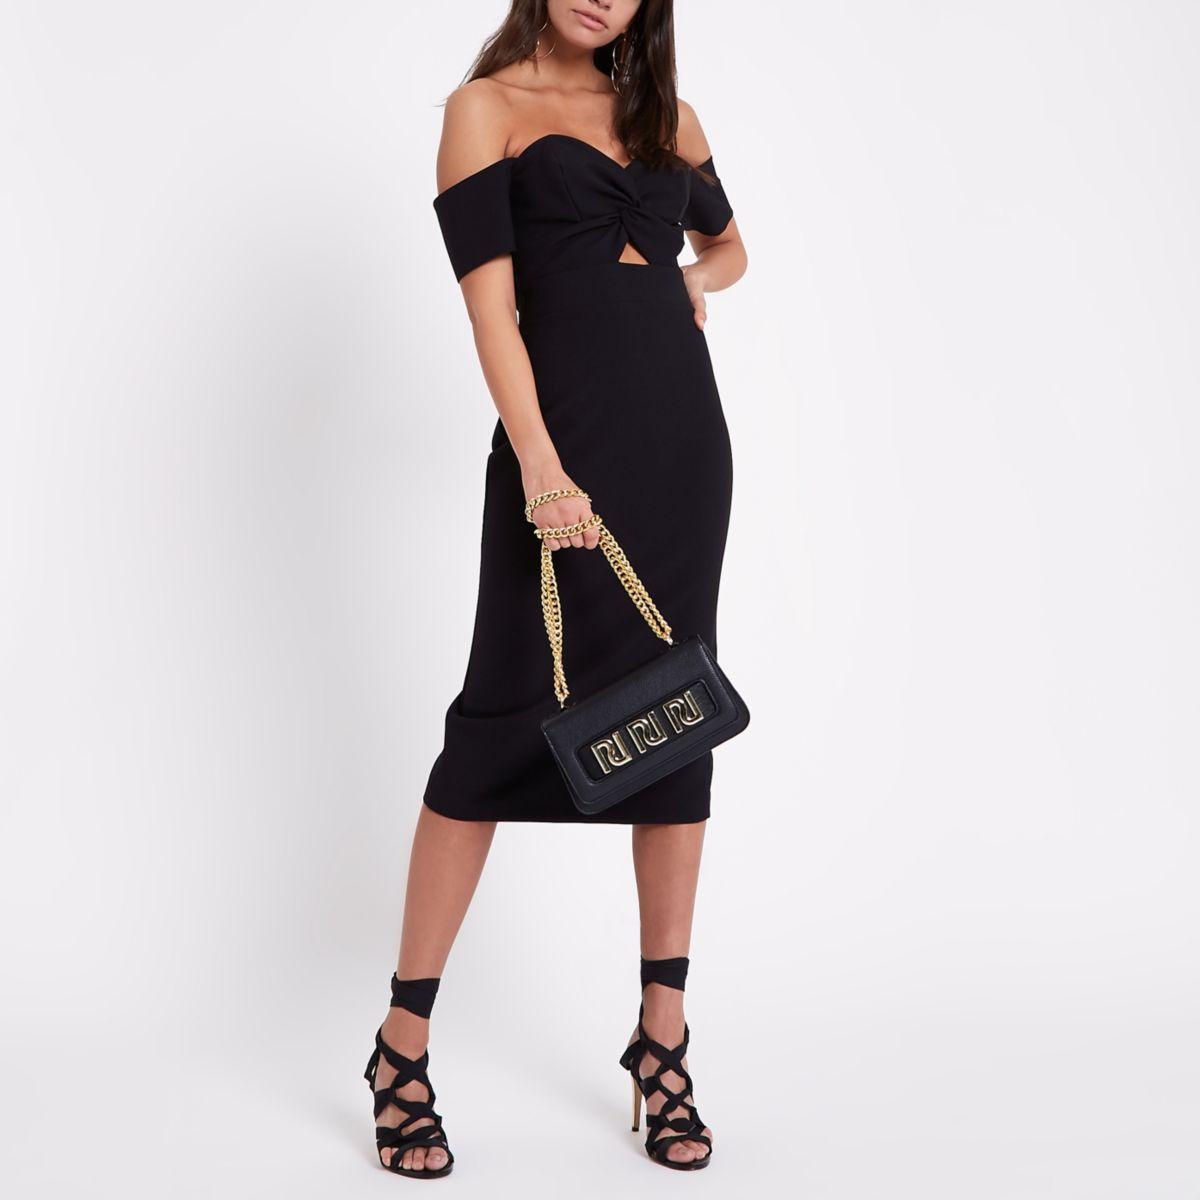 Black bodycon short sleeve dress